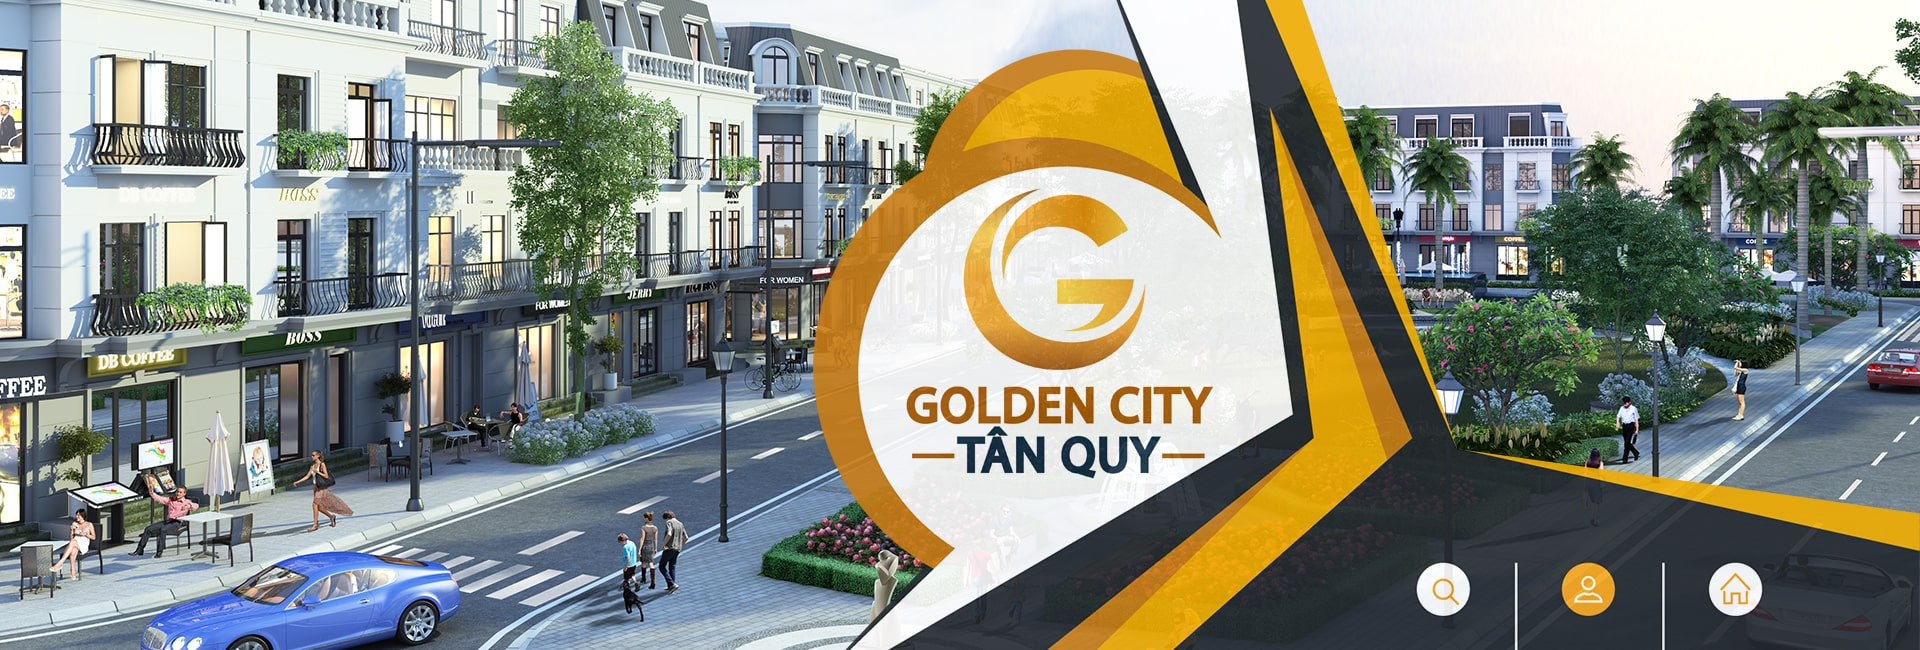 Golden-City-Tan-Quy-min